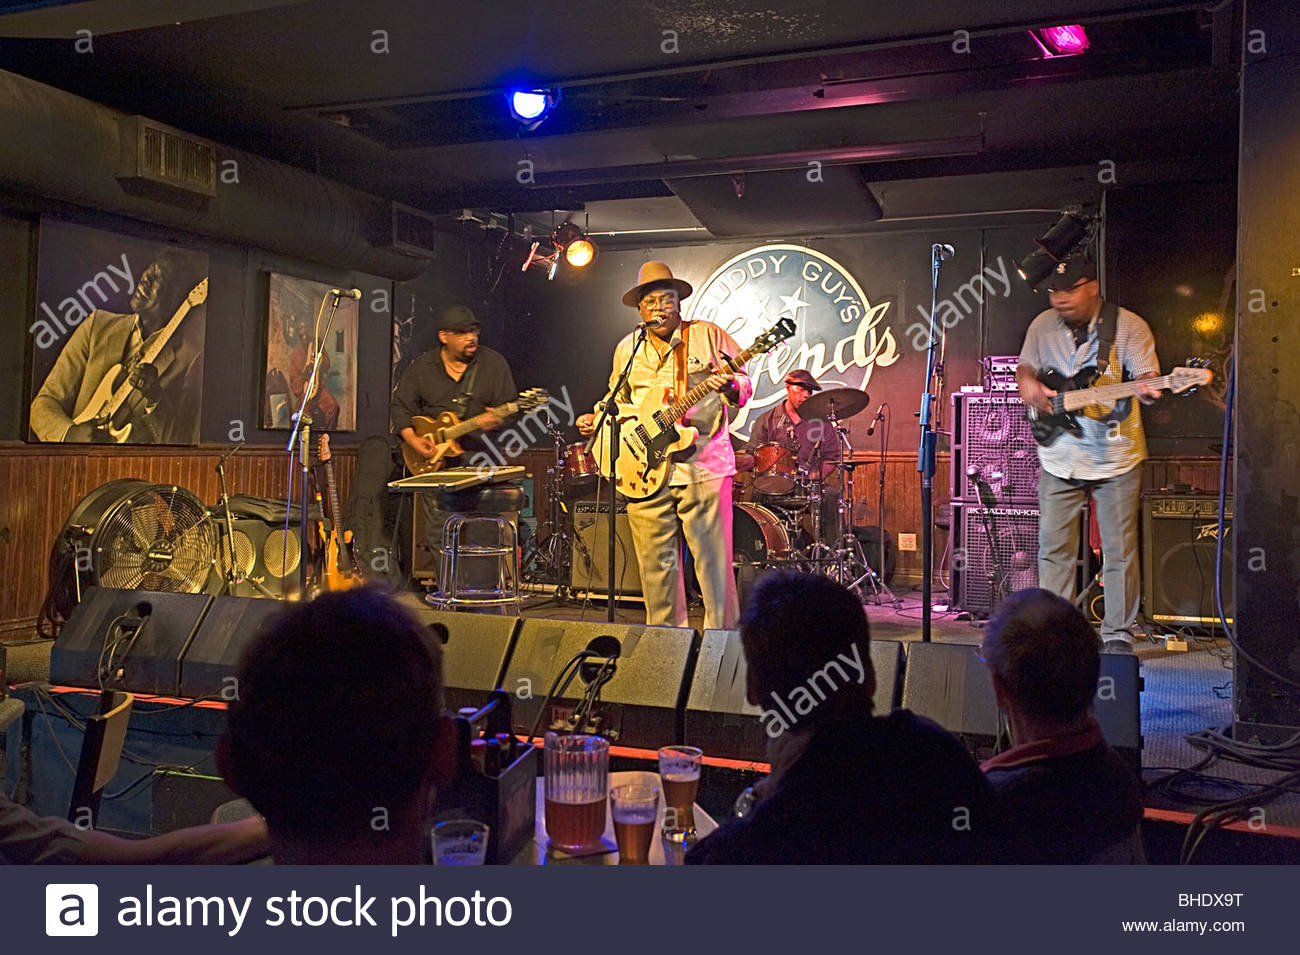 Jimmy Burns performing at the famous Buddy Guy's Legends blues club in the South Loop area. Chicago, Illinois, - Stock Image